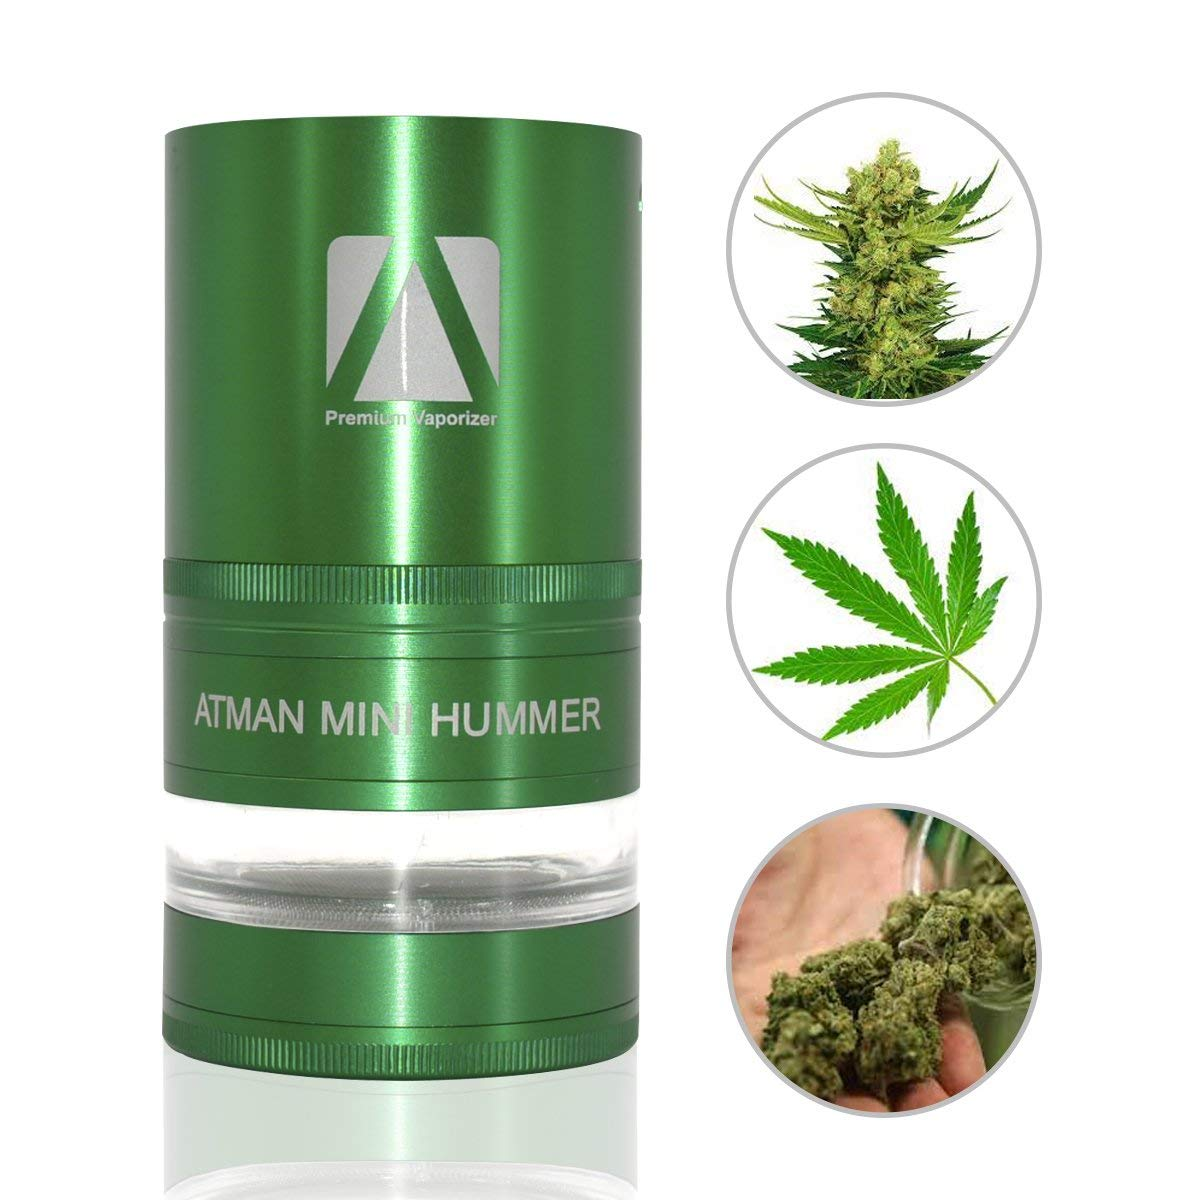 ATMAN Mini Hummer Electric Weed Herb Tobacco Grinder Mill Crusher Grinder Cracker - Automatic Operation, Electronic Battery Powered (Green)